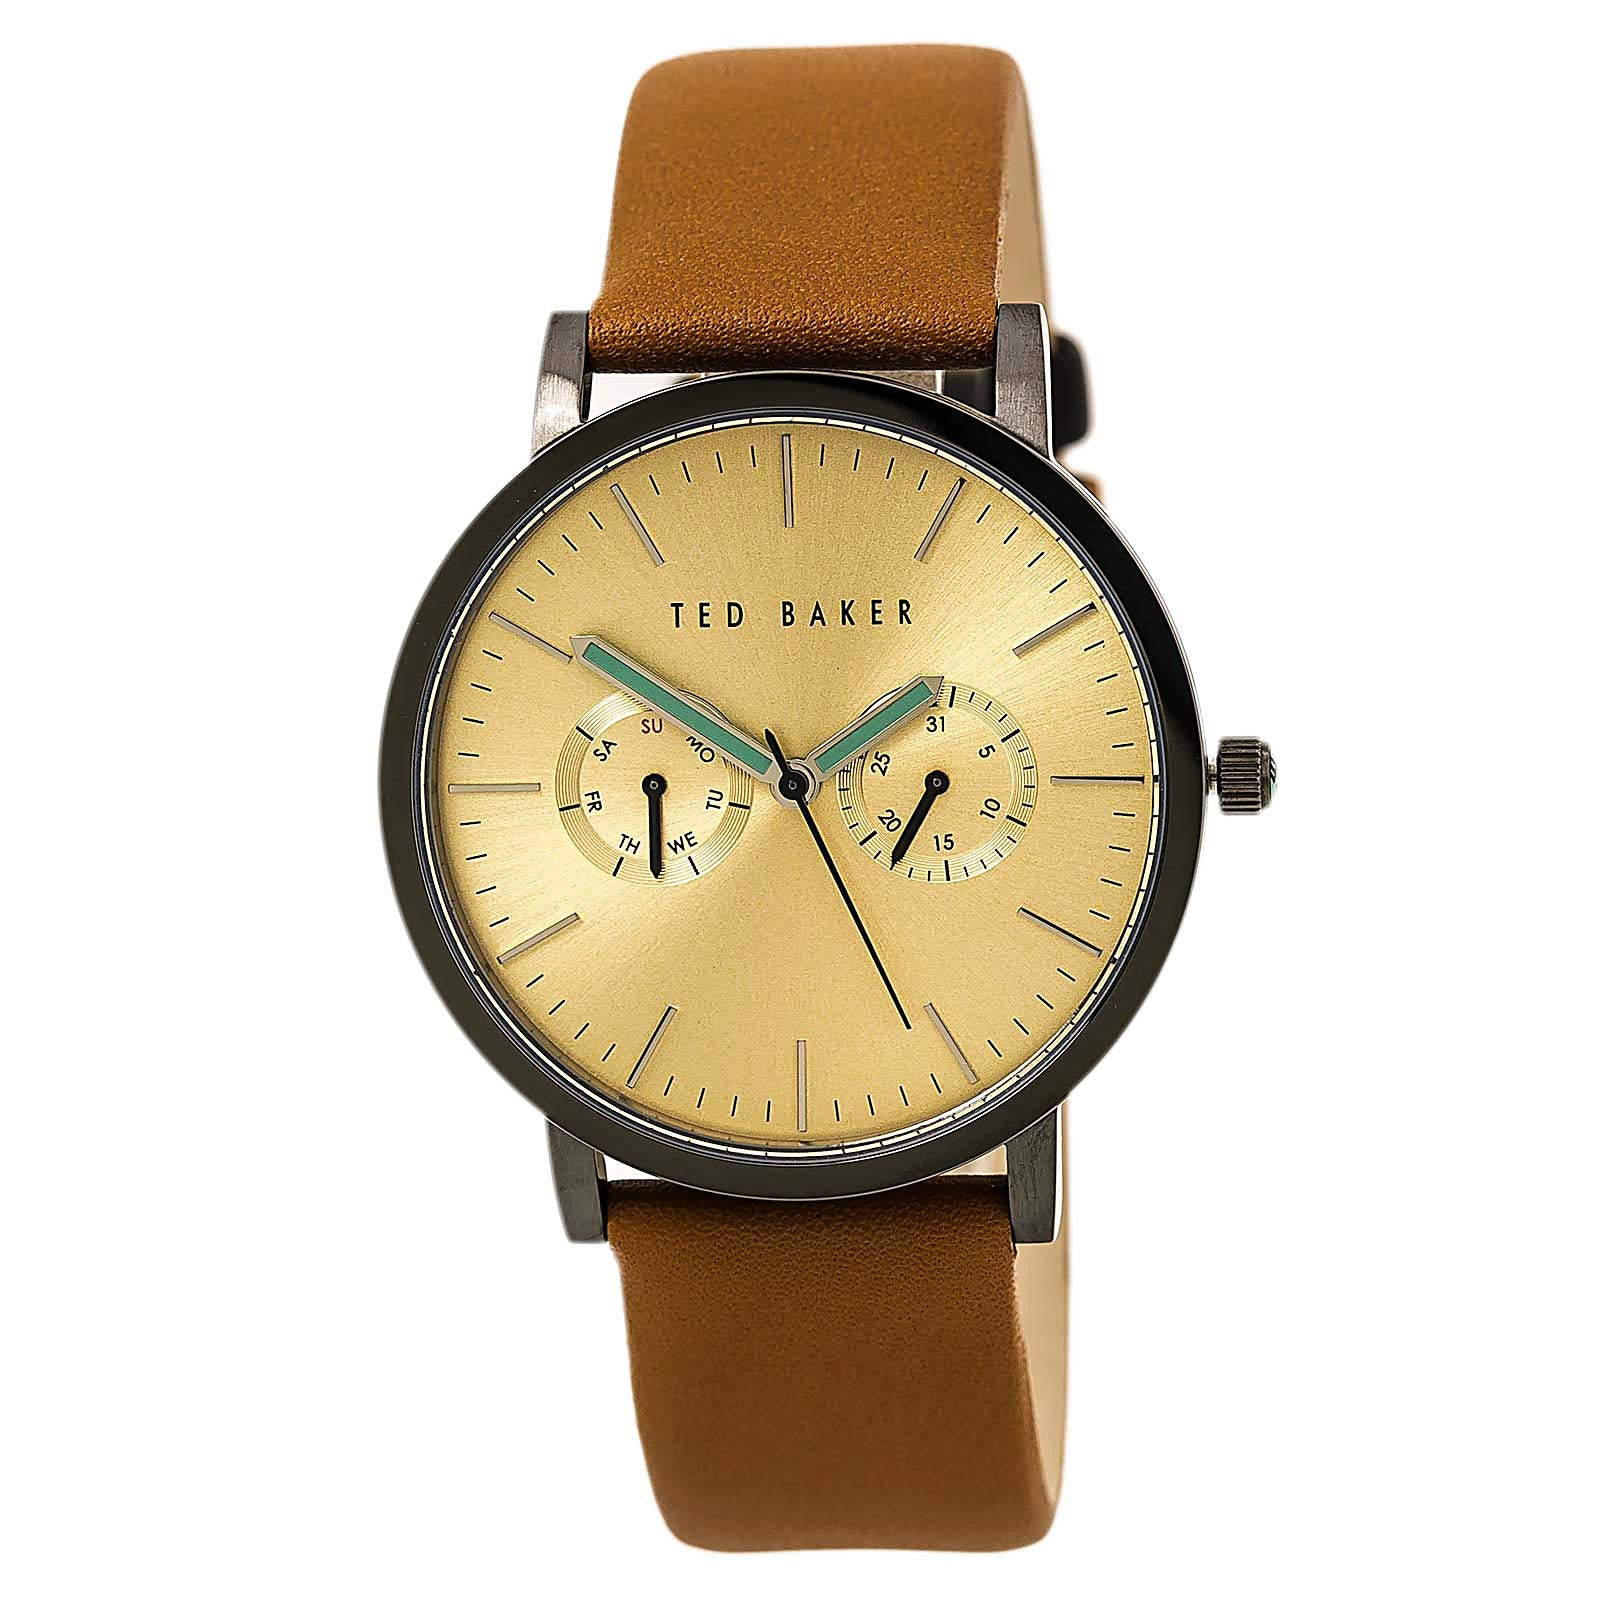 Ted Baker 10009249 Men's Jaknite Gold Tone Dial Brown Leather Strap Watch